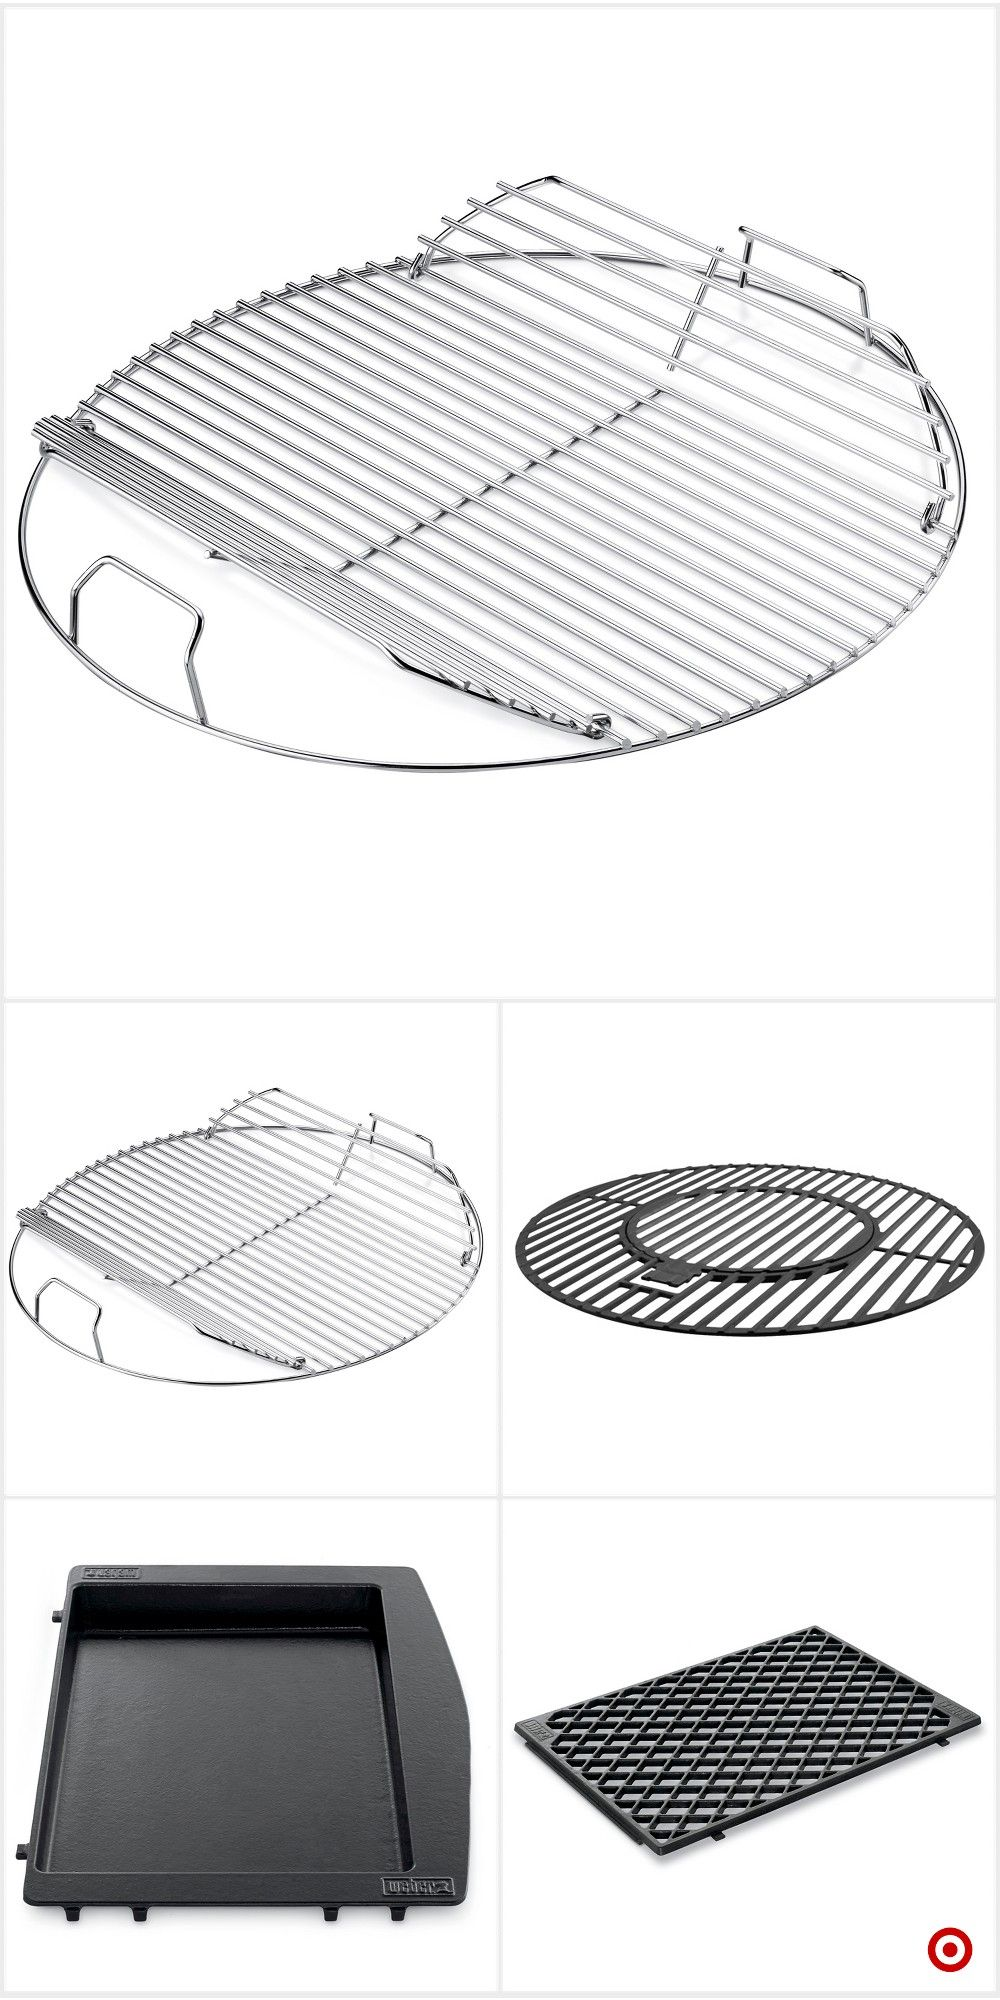 Luggage Rack Target Inspiration Shop Target For Grill Grate You Will Love At Great Low Pricesfree Inspiration Design